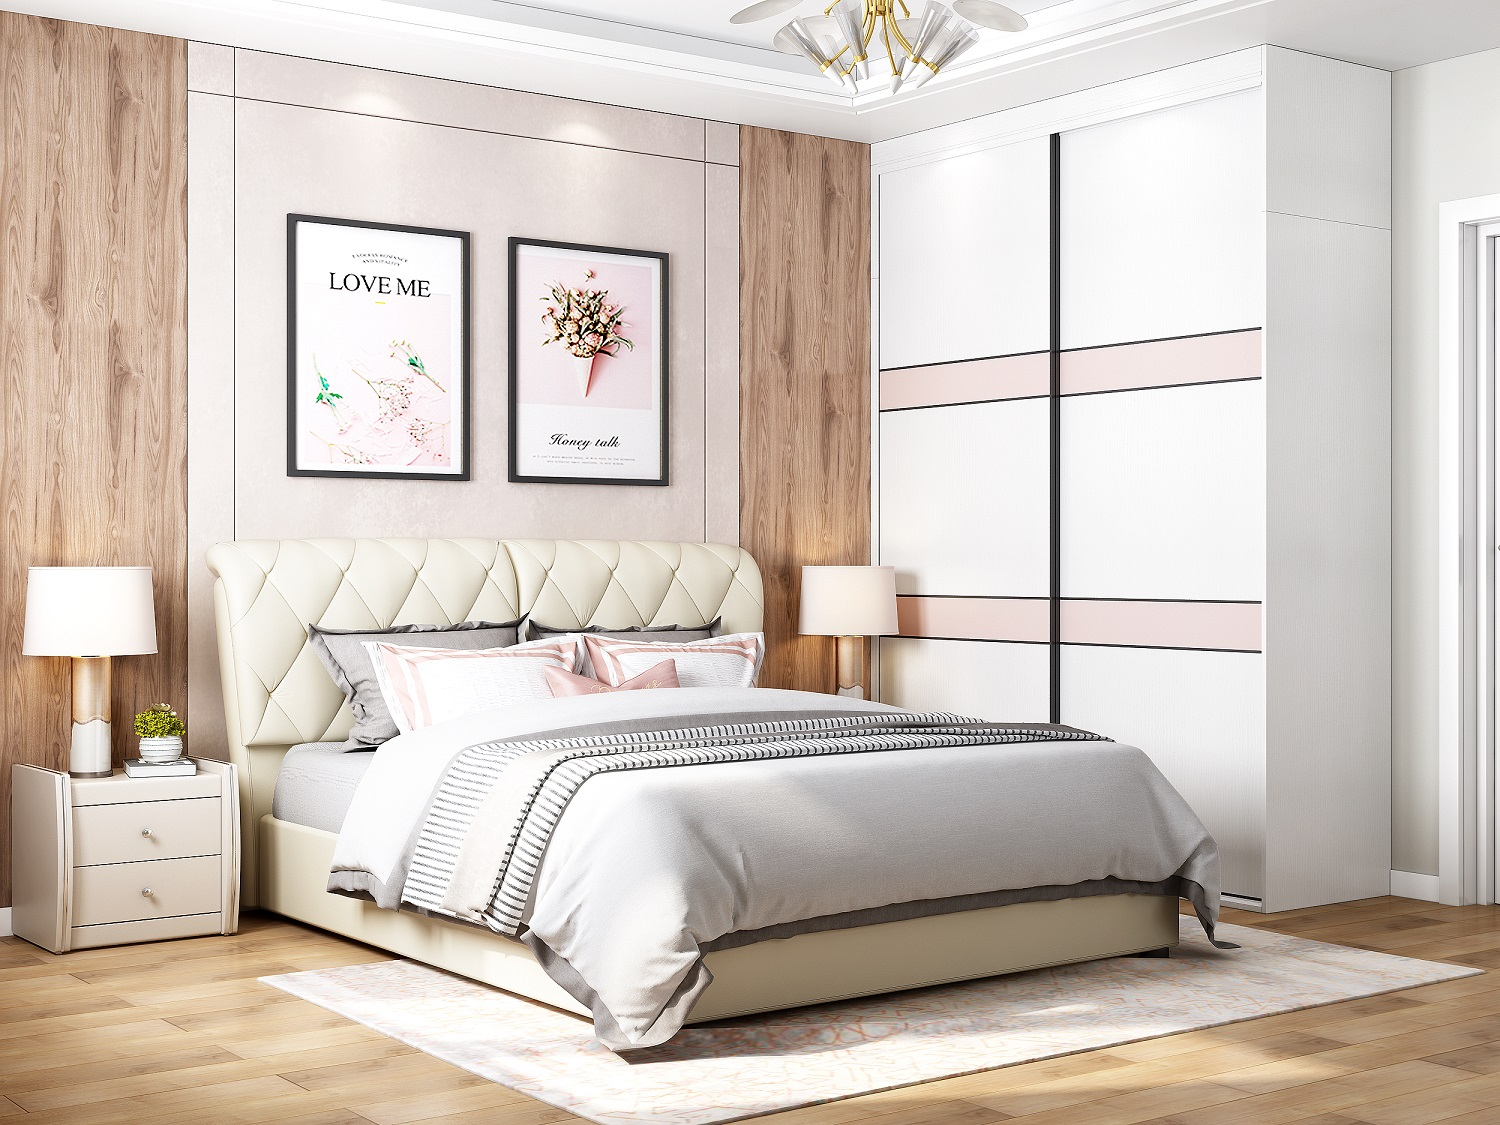 Don't Worry If the Bedroom Area Is Small. Let Me Show You Some Space-saving Bedroom Decoration Tips